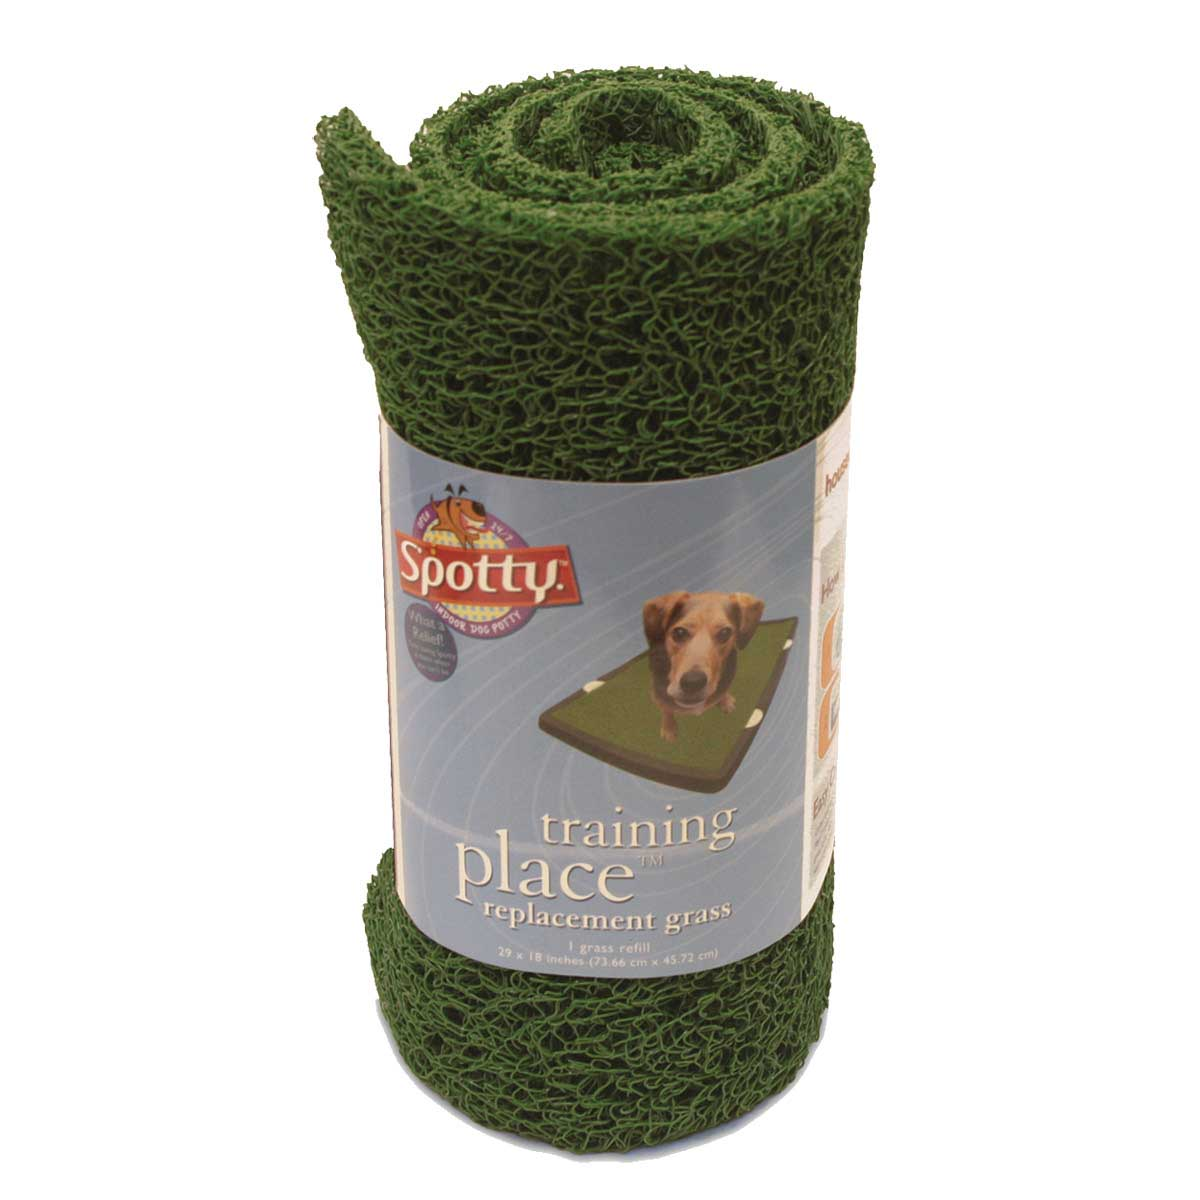 Spotty Training Place Indoor Dog Potty Replacement Grass